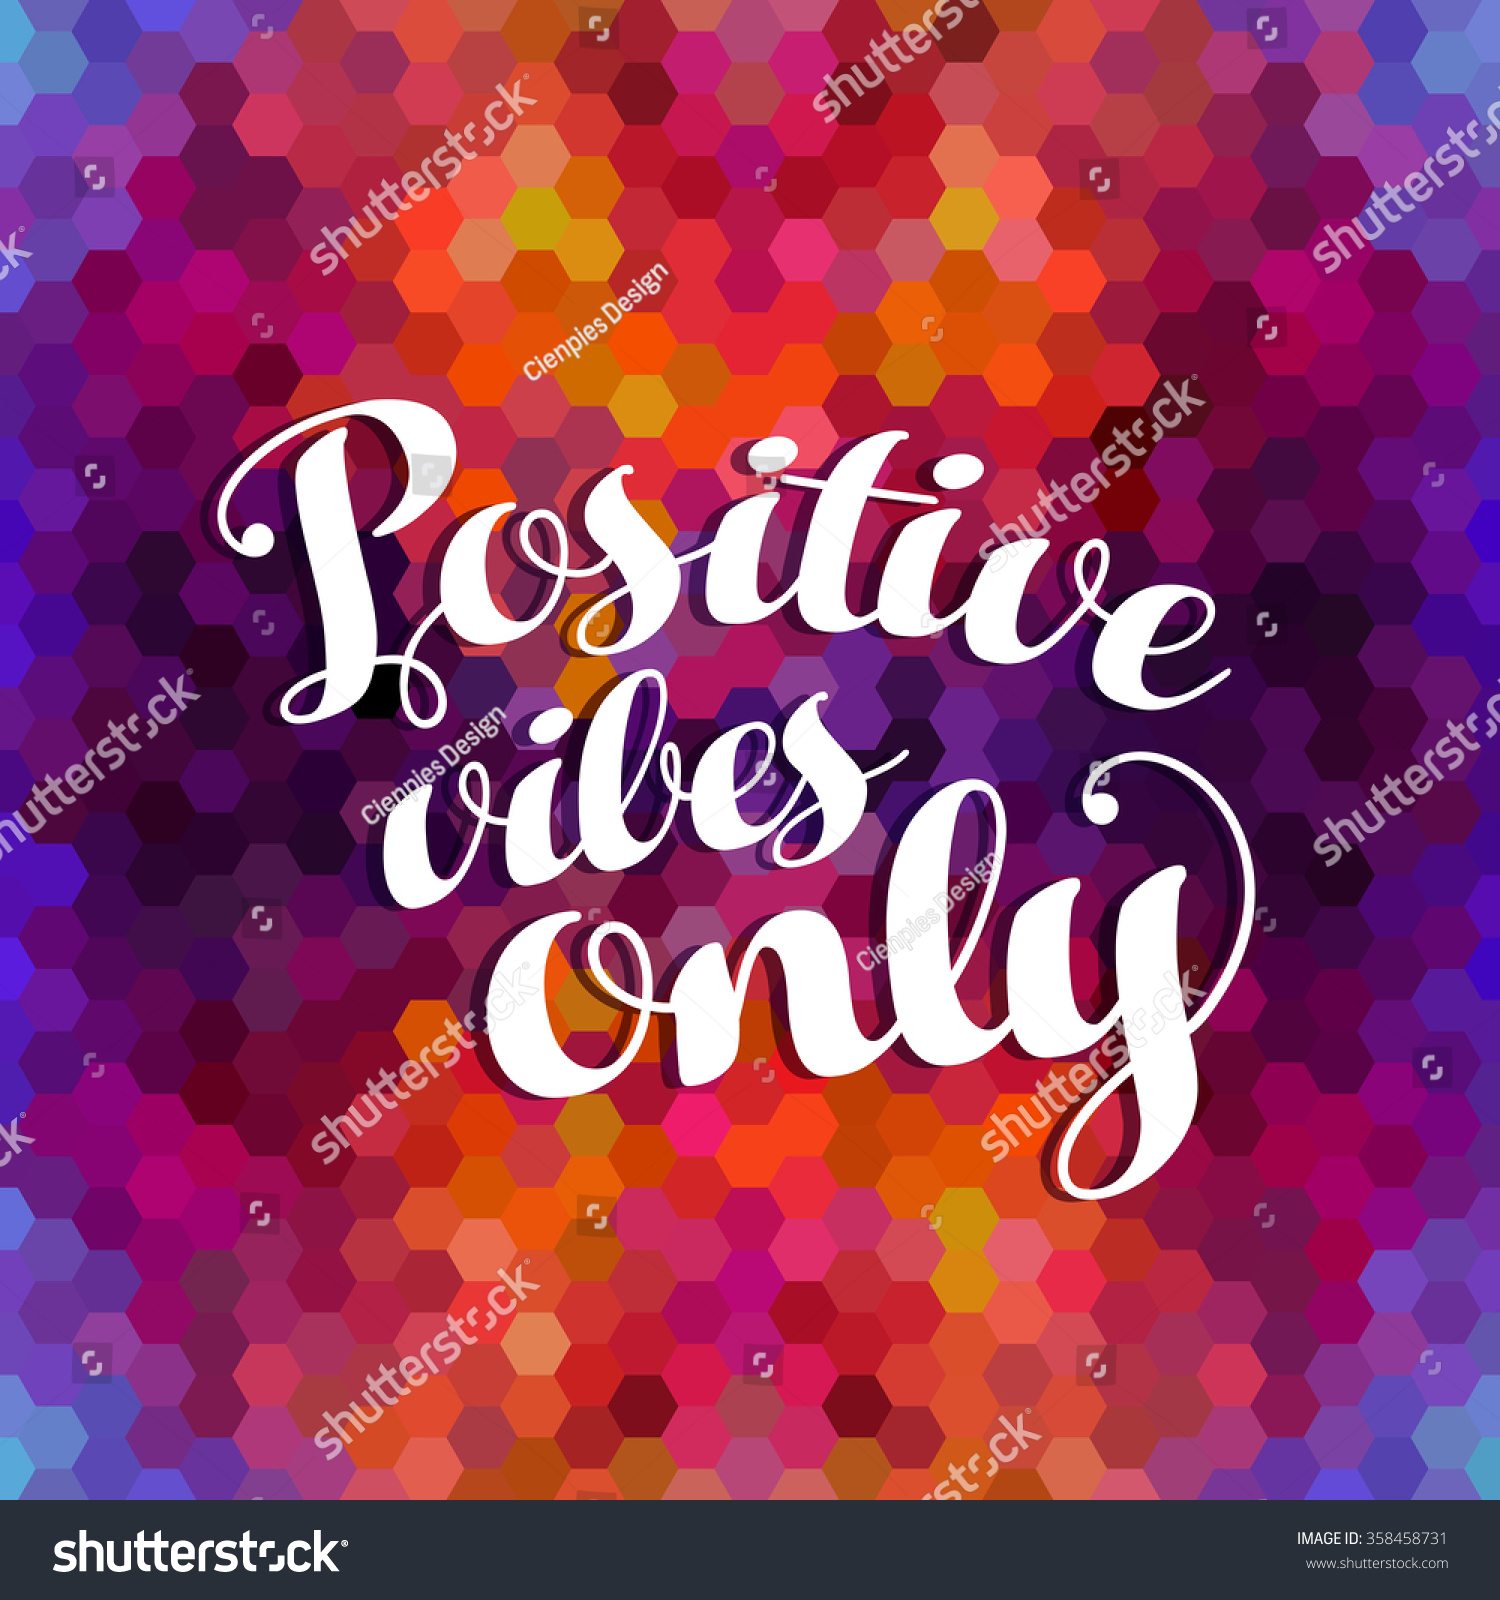 Quote poster design inspiration - Positive Vibes Only Positivity Concept Poster Design Inspiration Quote On Colorful Grid Mosaic Background